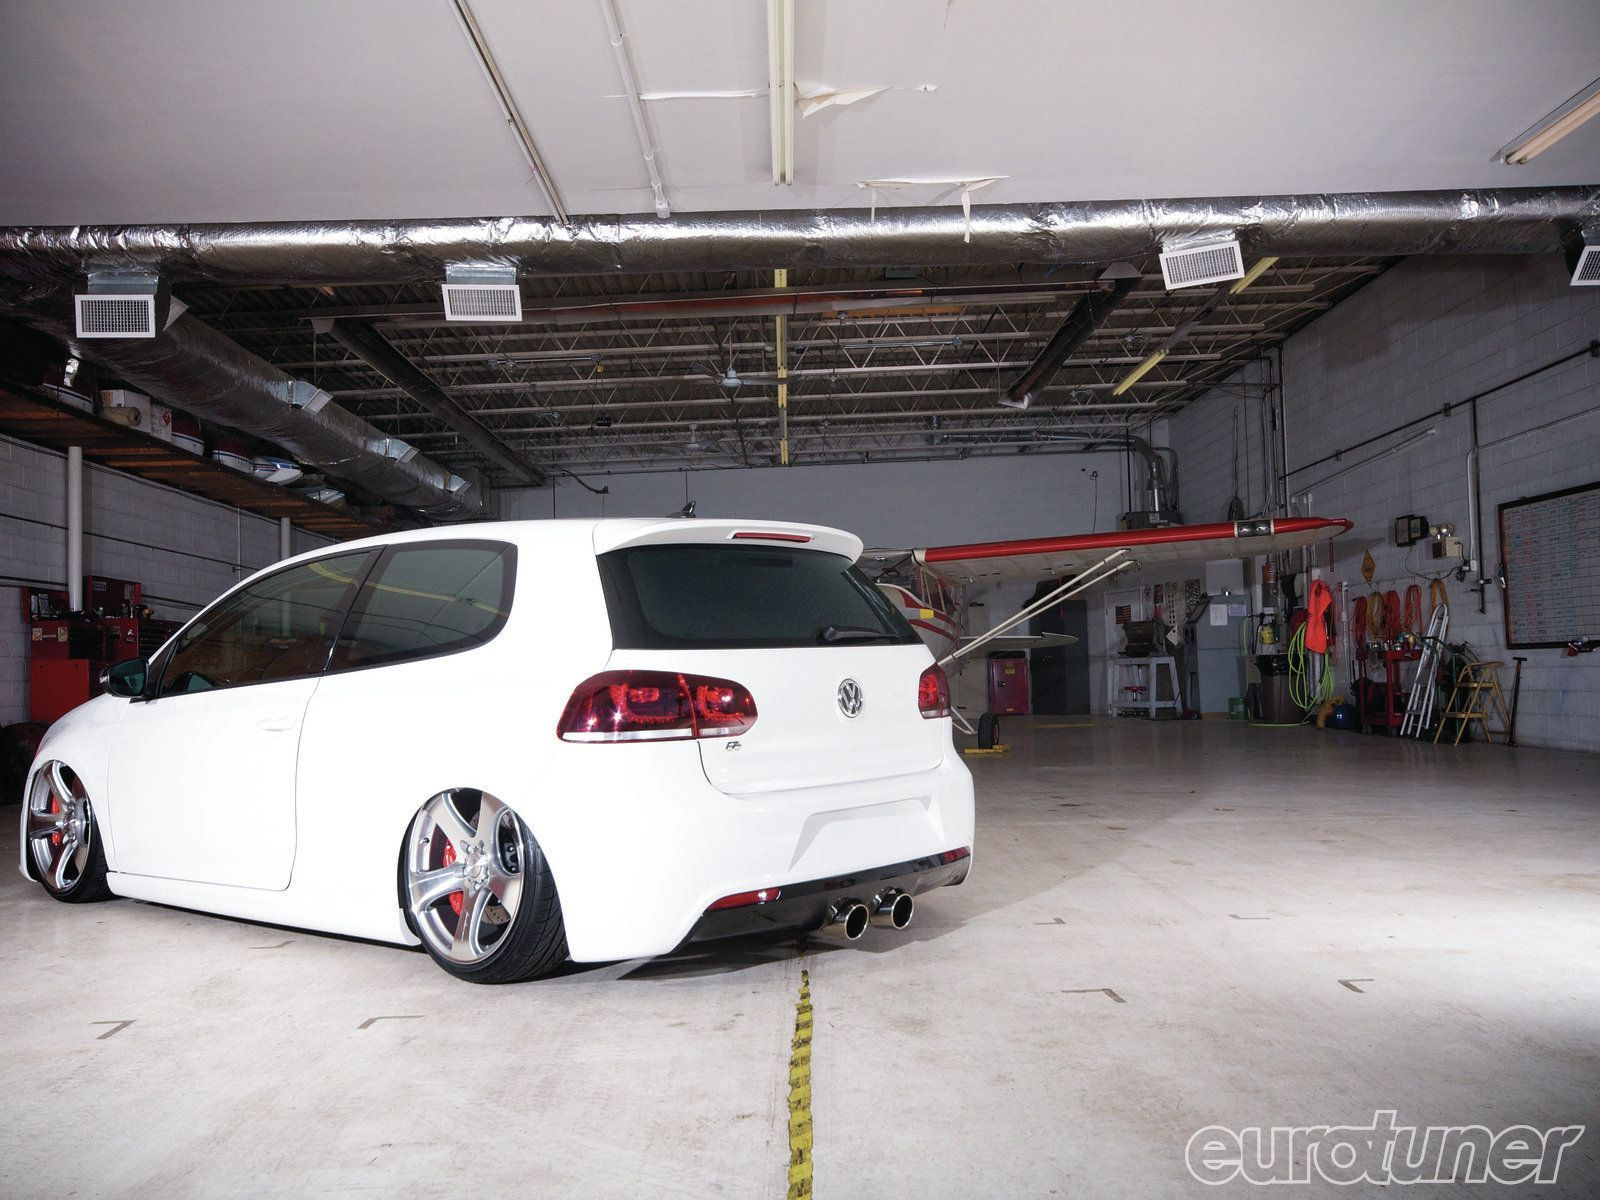 Pin By Mikedaniel Ocasio On VW | Pinterest | Tail Light, Volkswagen And Vw